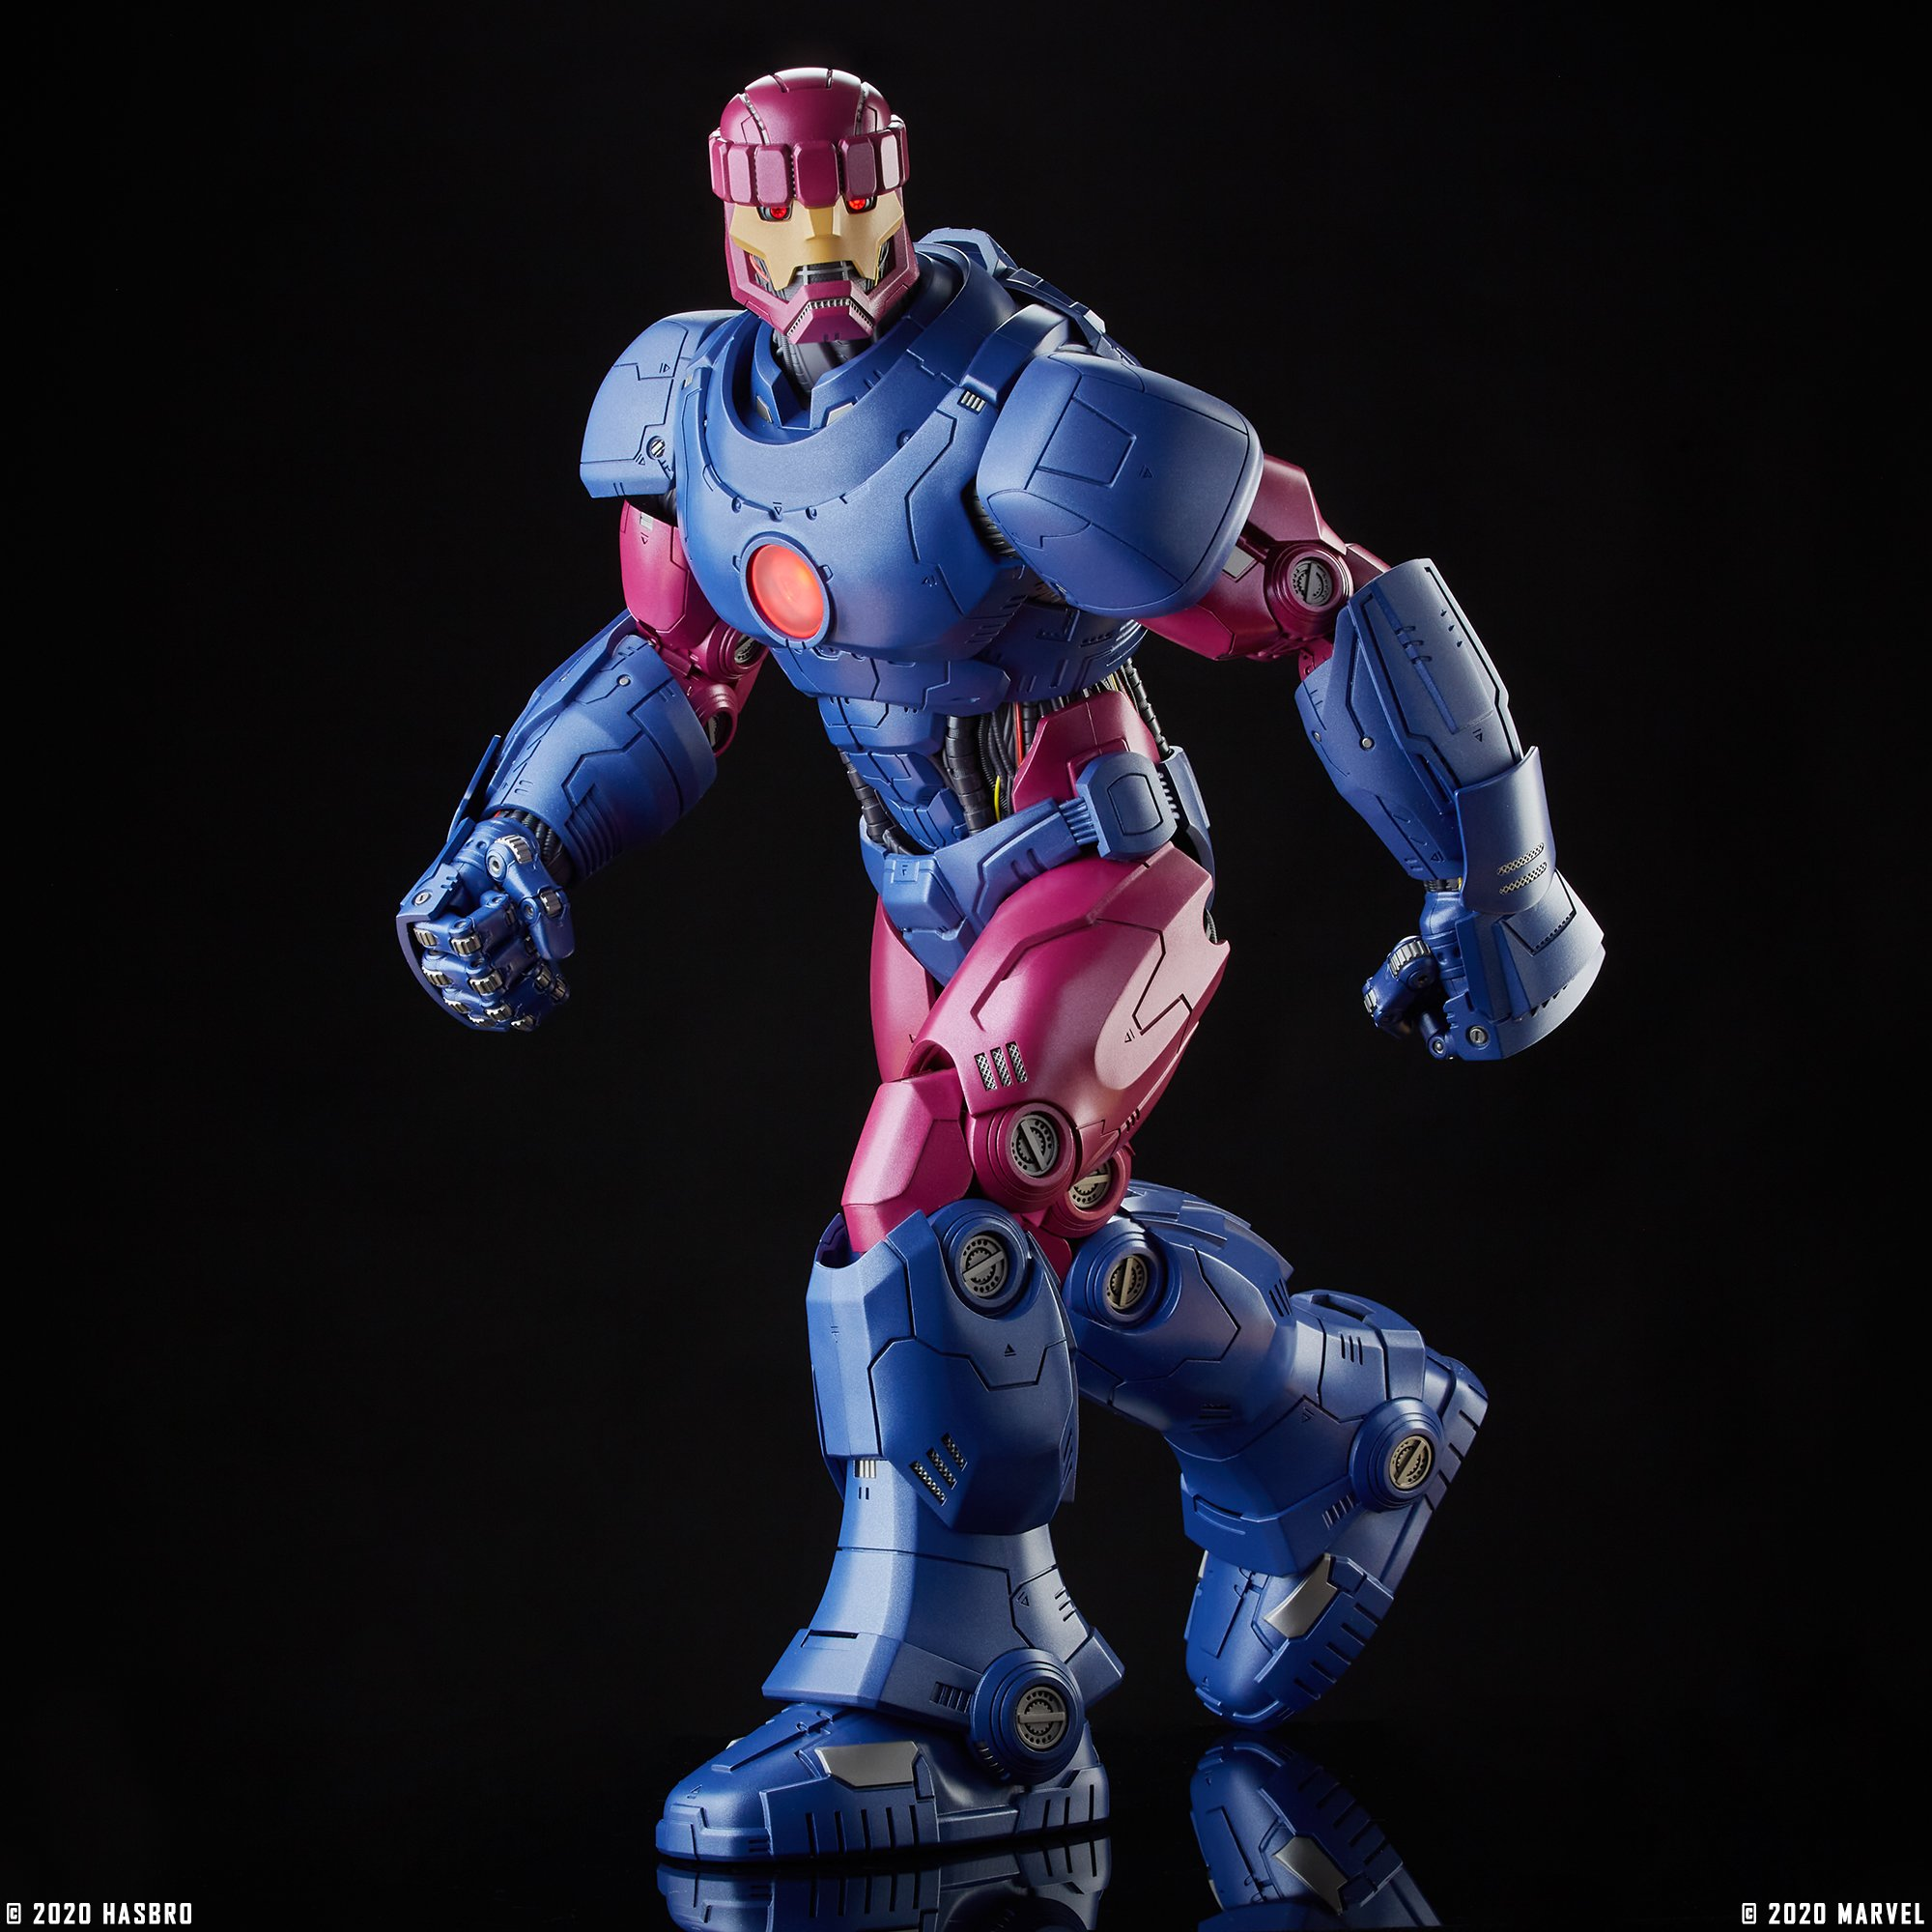 Sentinel articulated pose.